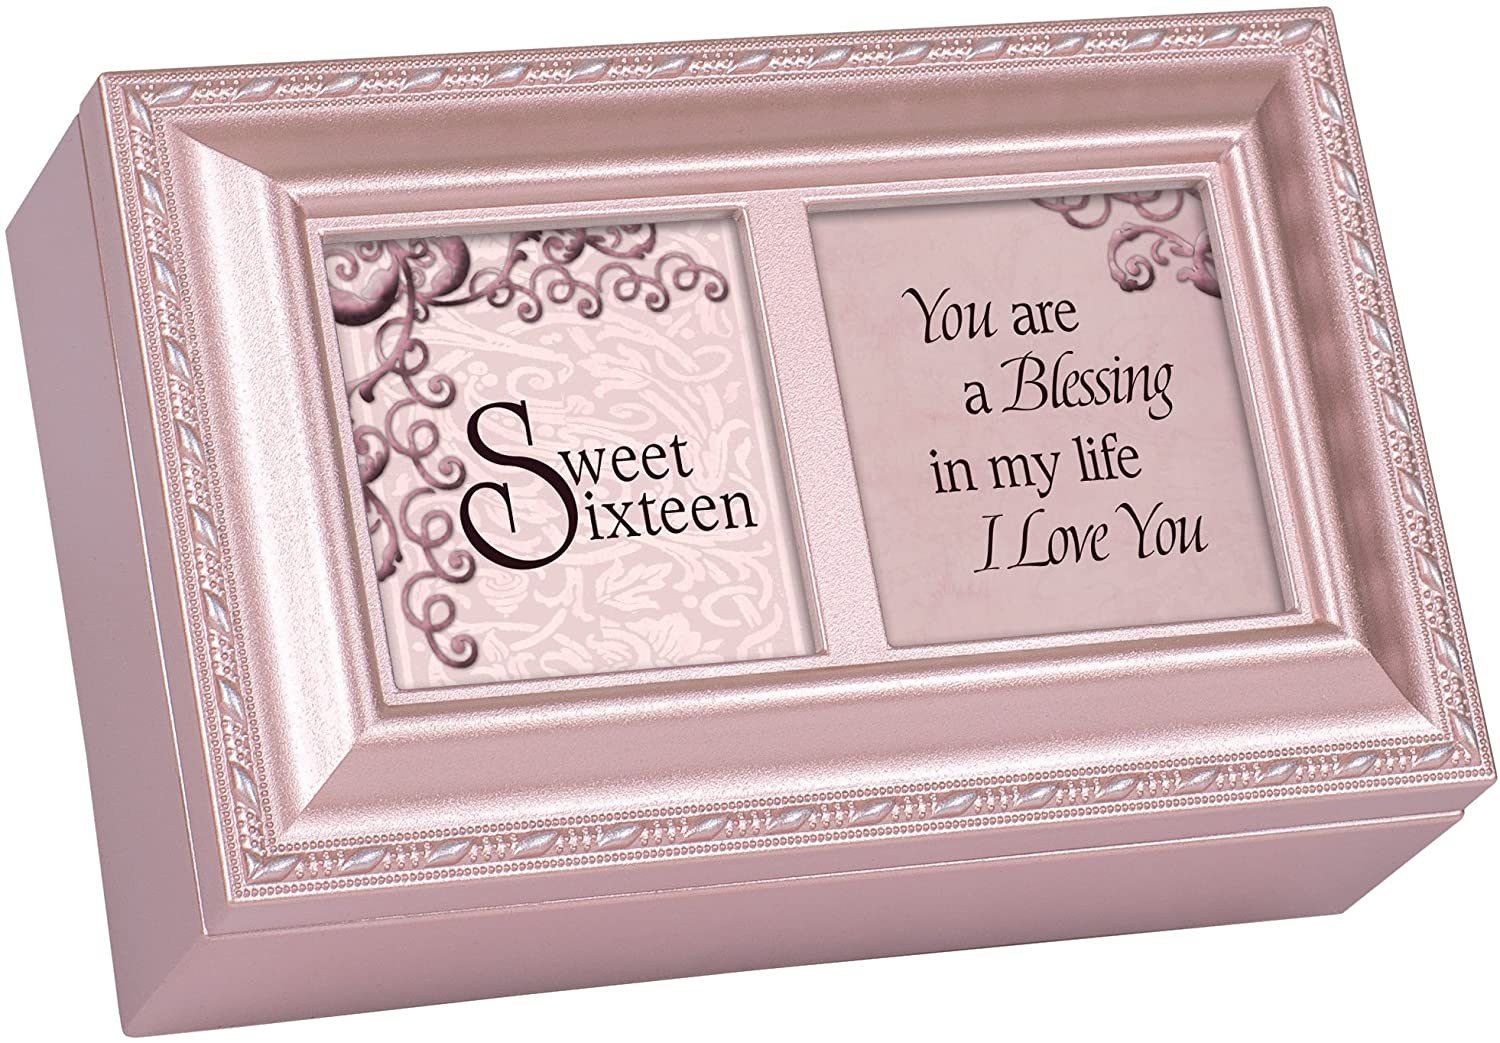 Cottage Garden Sweet Sixteen You are a Blessing Matte Pink Jewelry Music Box Plays You Light Up My Life